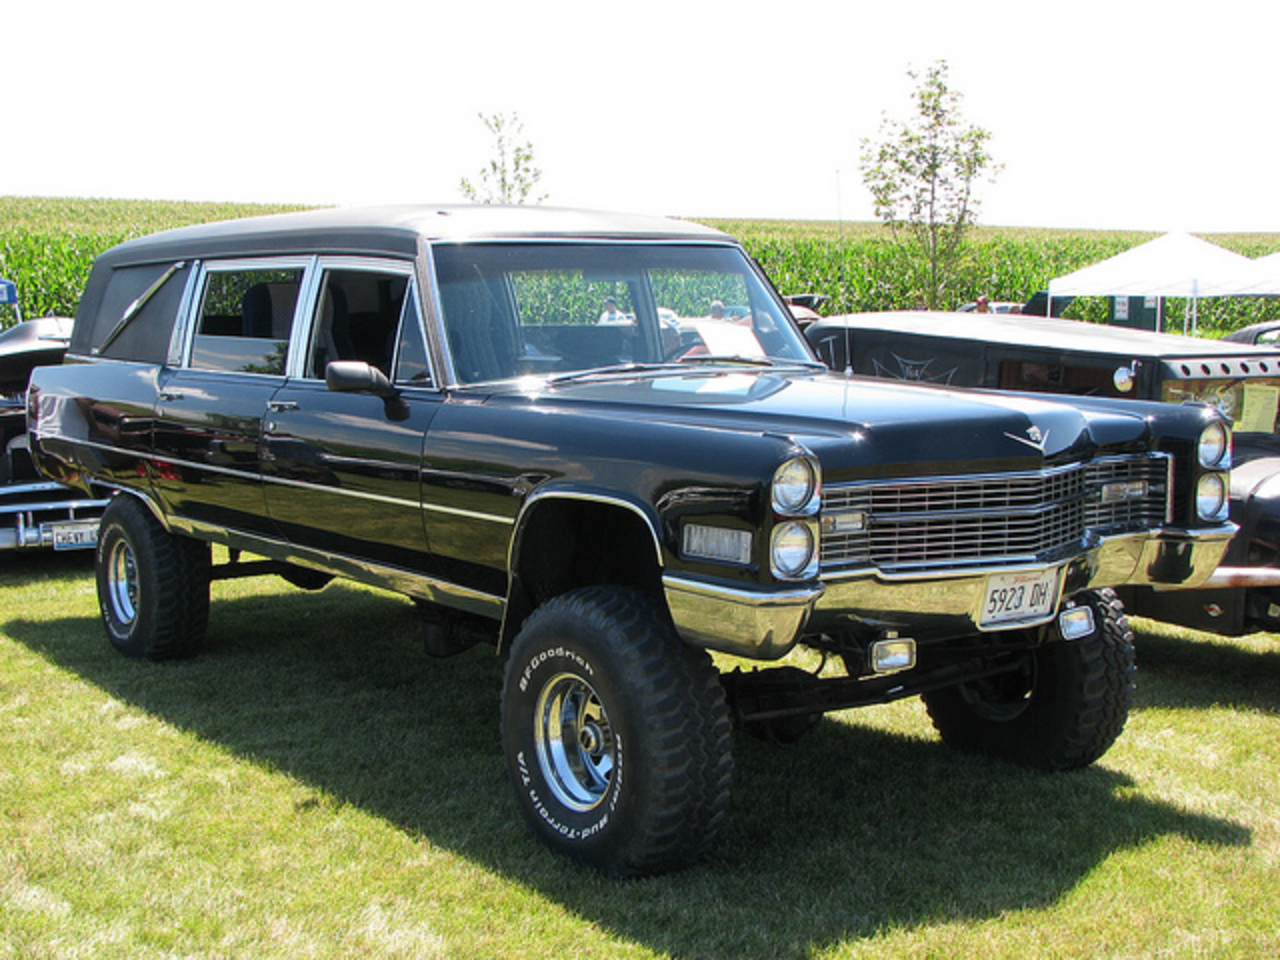 1966 Cadillac Hearse | Flickr - Photo Sharing!